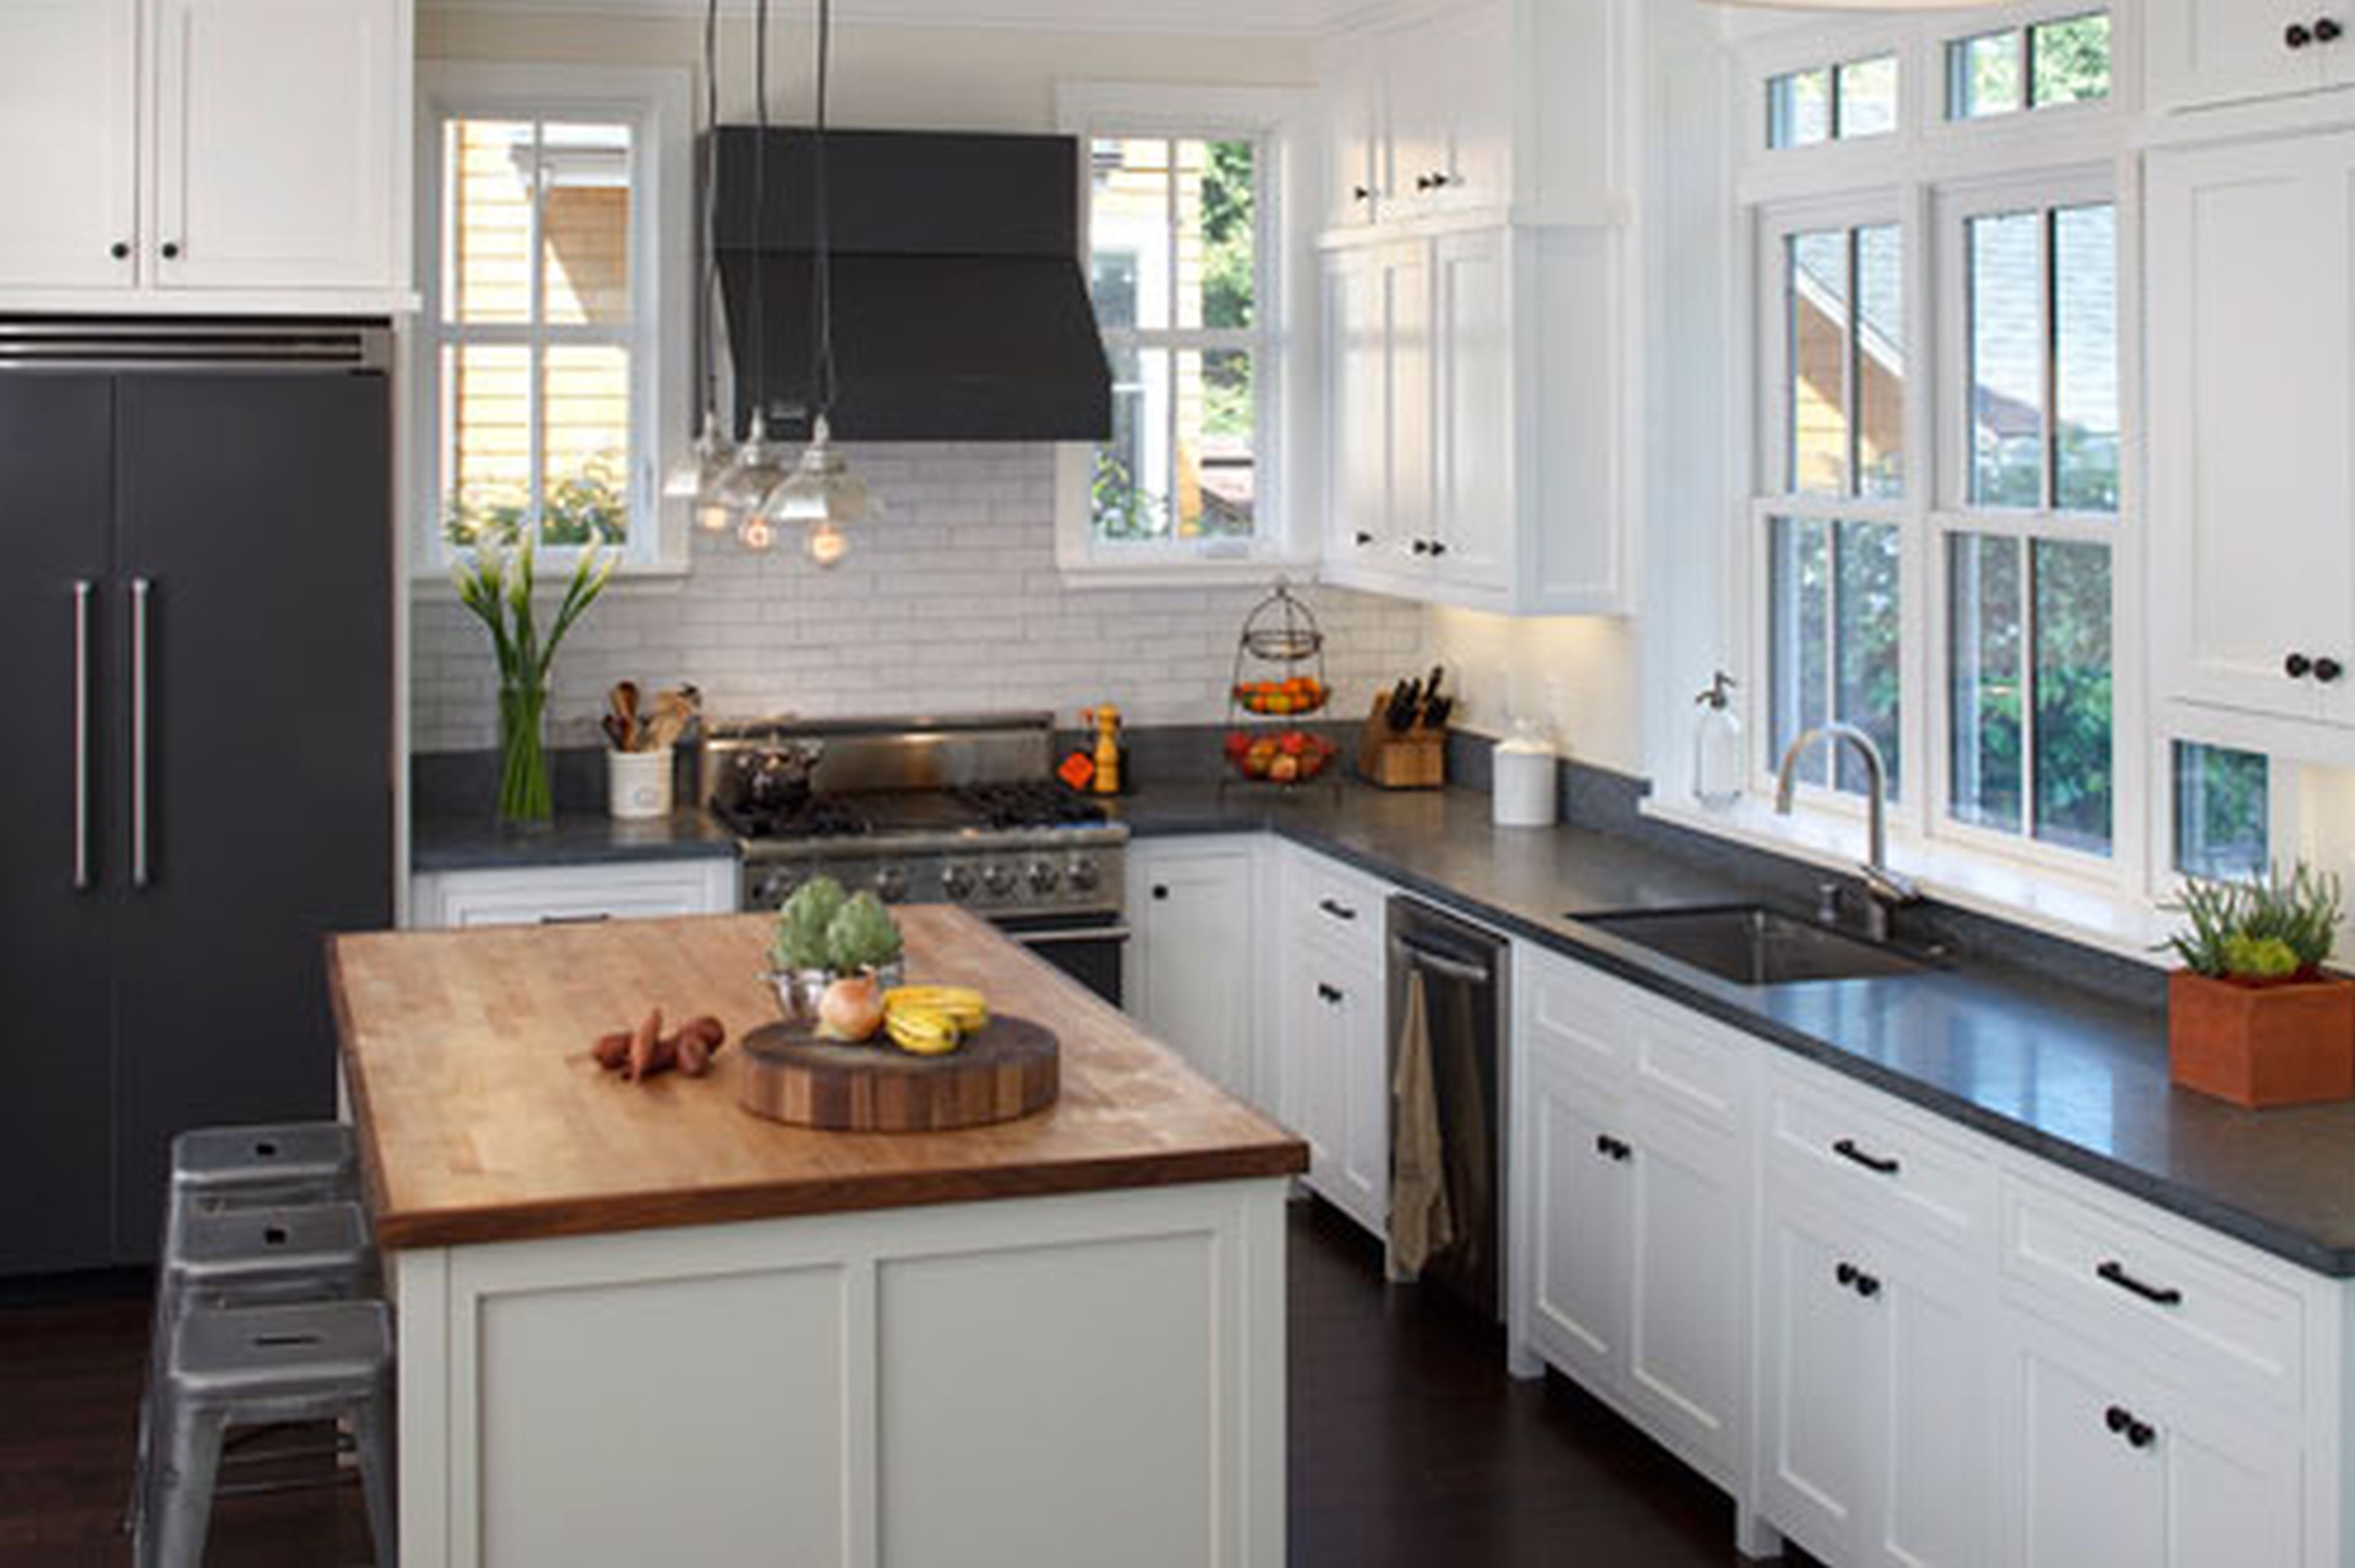 White Kitchens For 17 Best Images About Kitchen Remodel On Pinterest Antique White